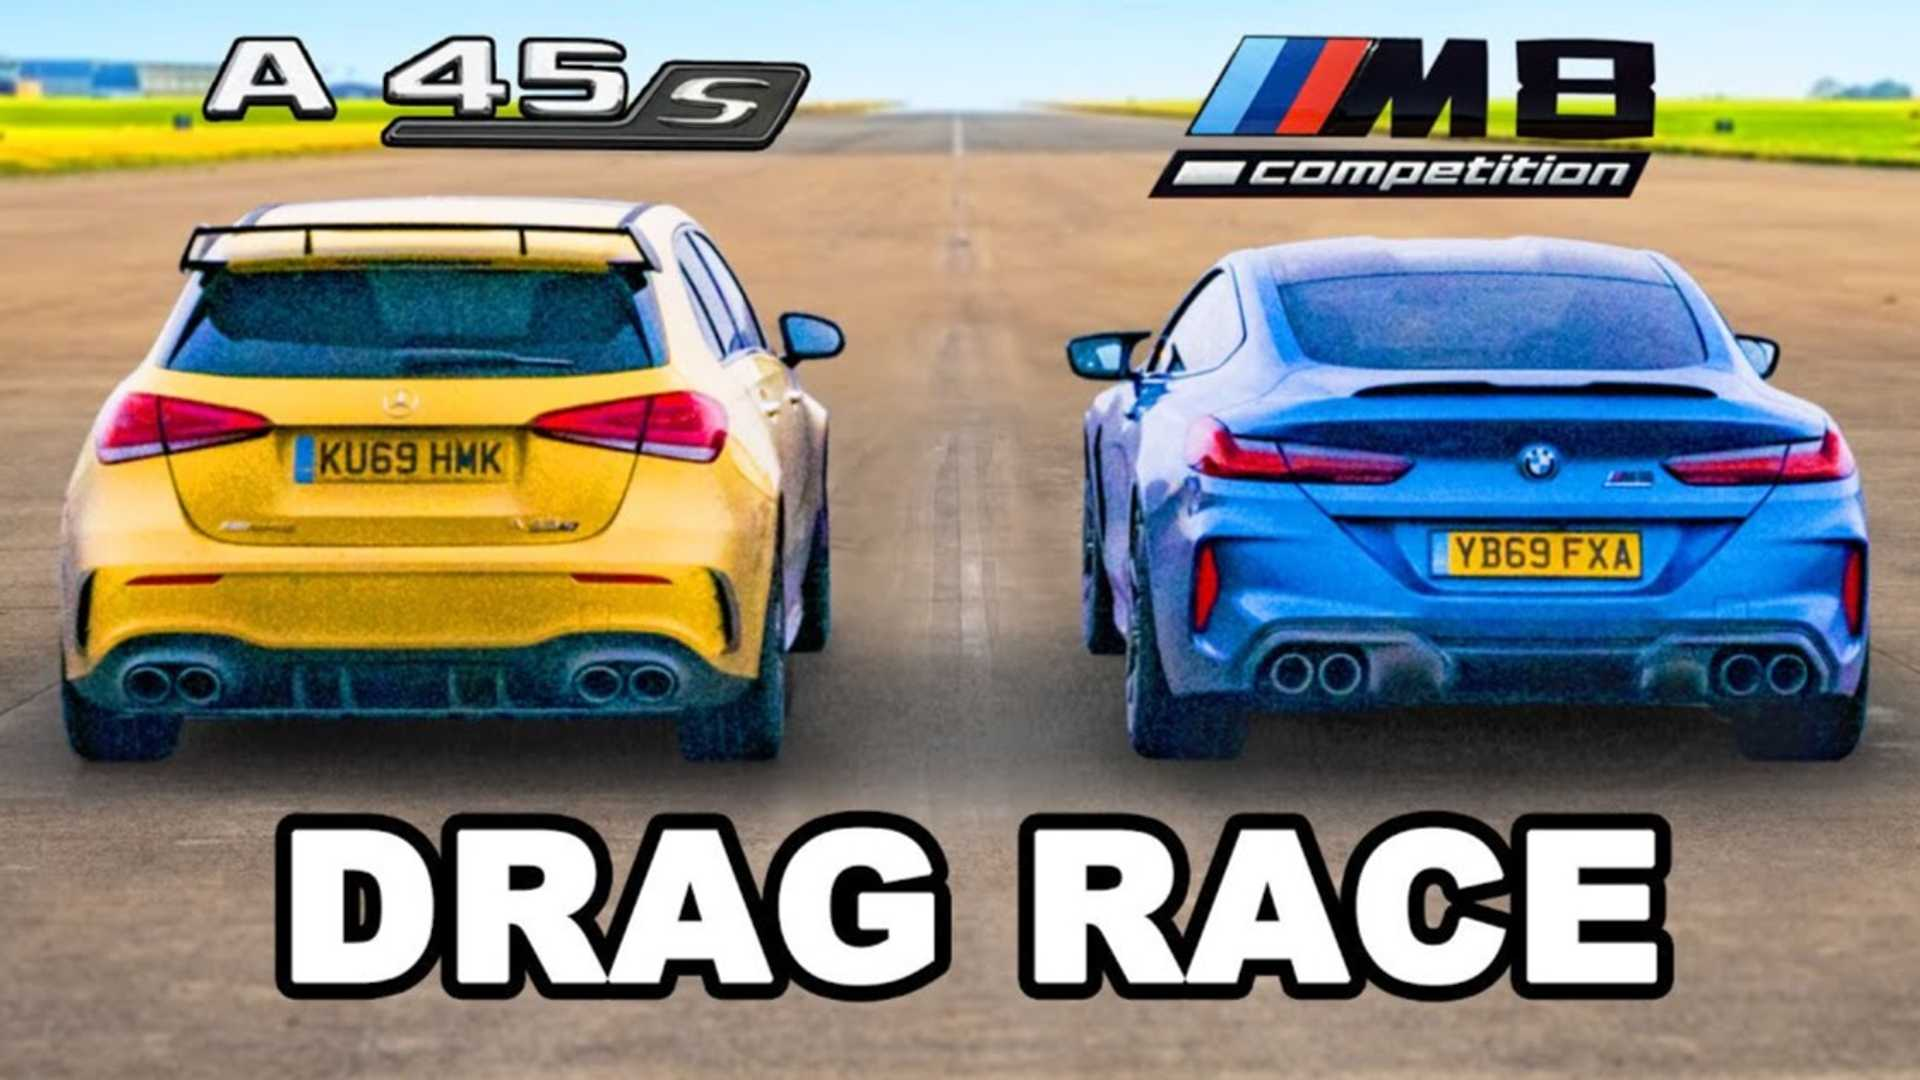 Mercedes-AMG A45 S vs. BMW M8 Competition